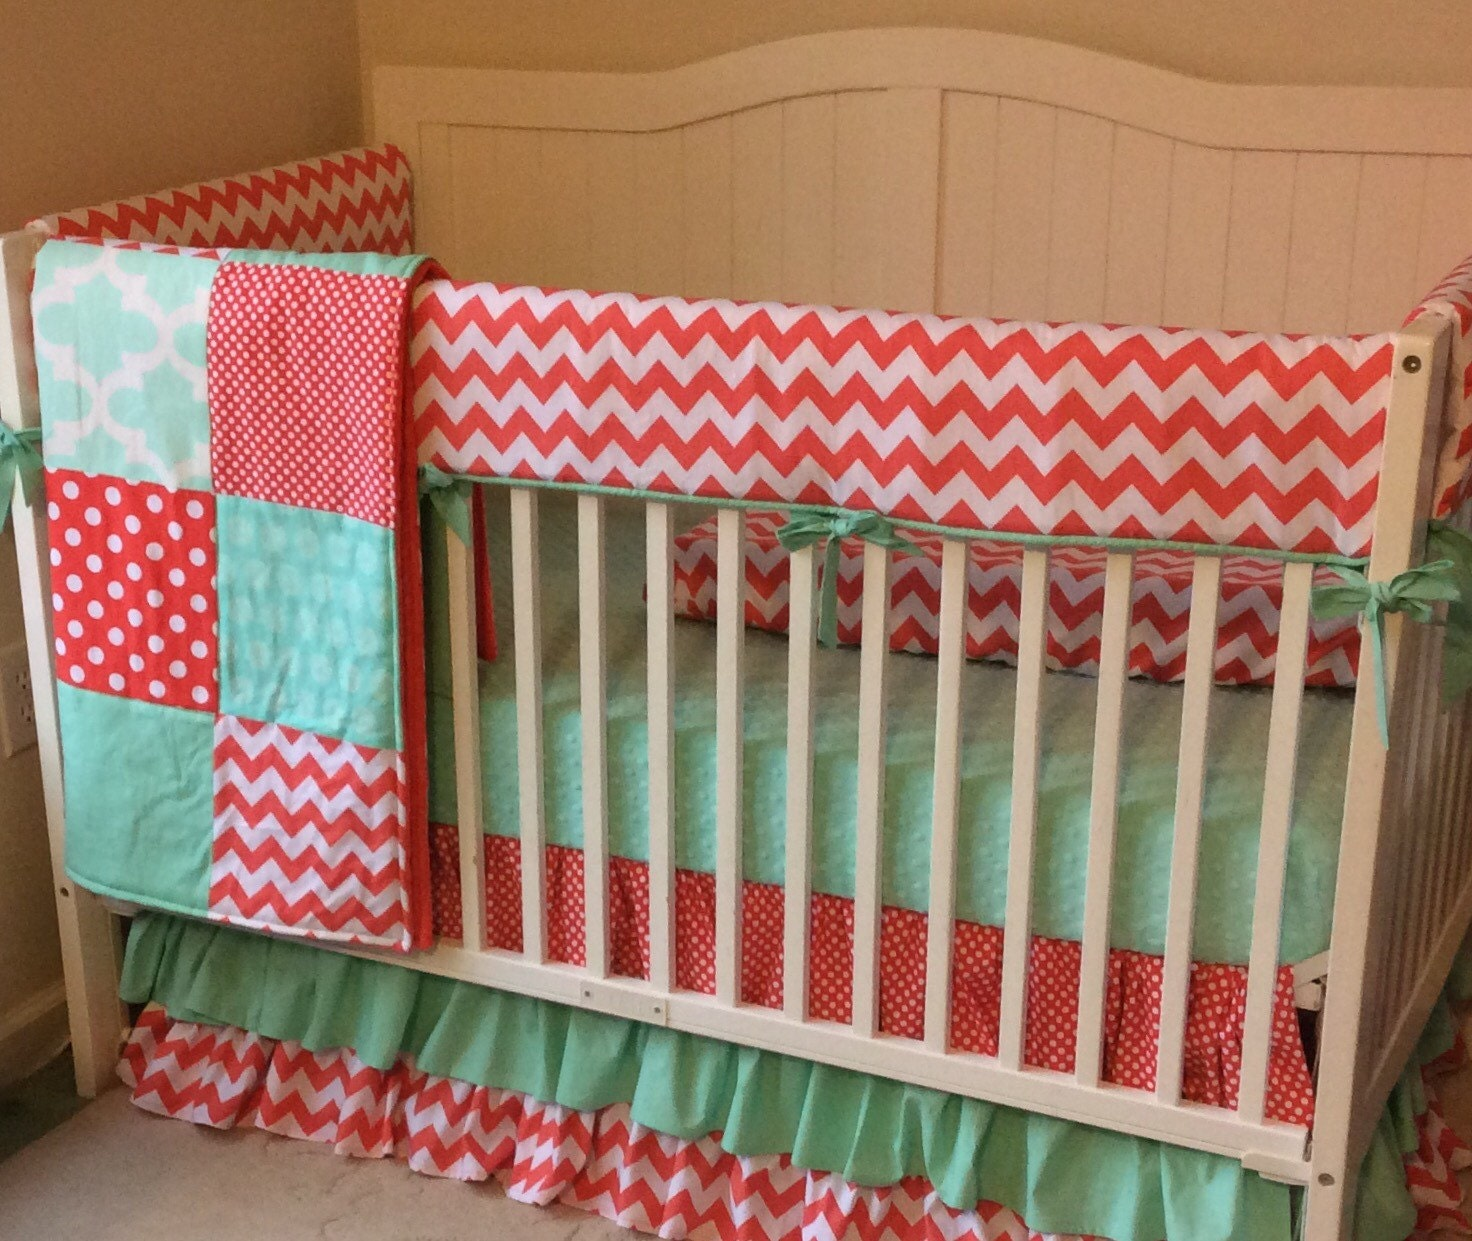 Coral And Mint Bedding Crib Bedding In Coral And Mint Bumperless With Ruffles